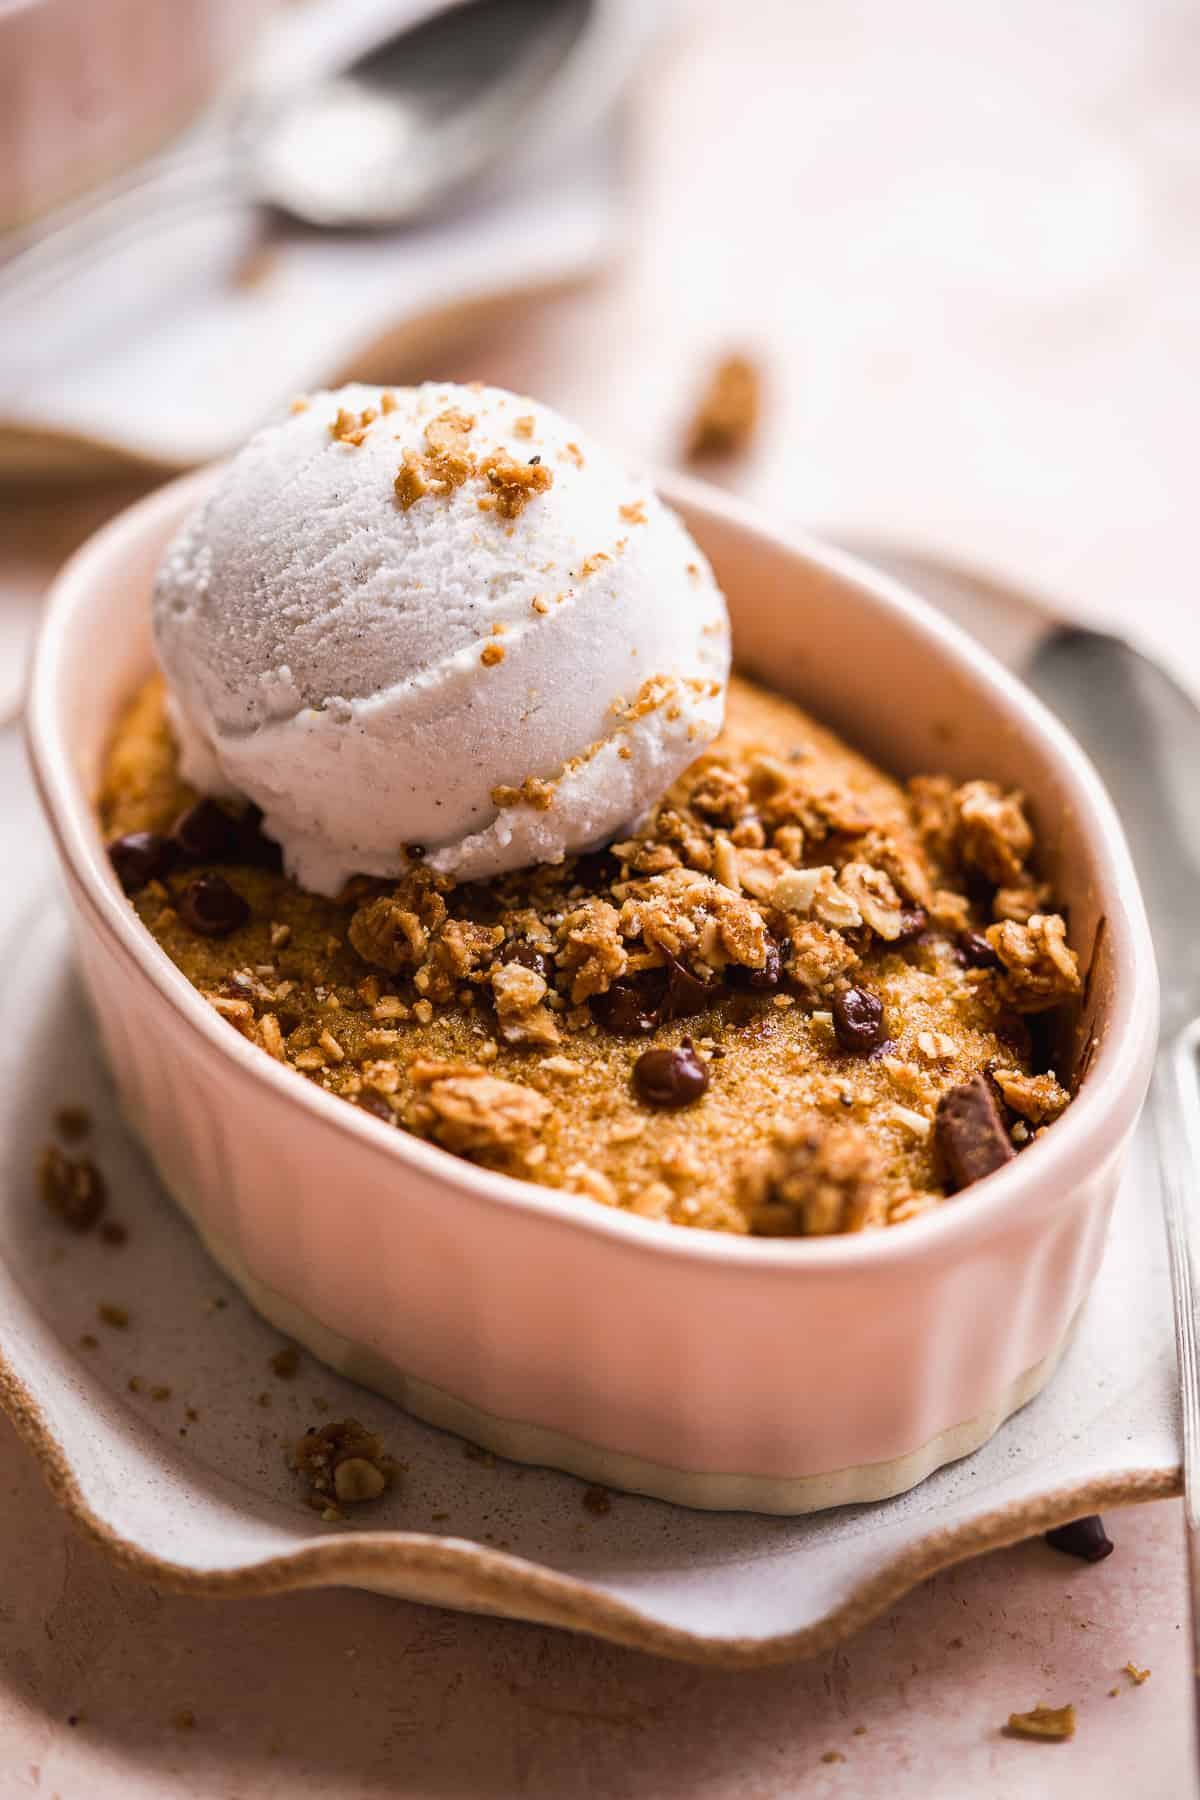 Oval ramekin with a chocolate chip cake baked inside and ice cream scoop on top.